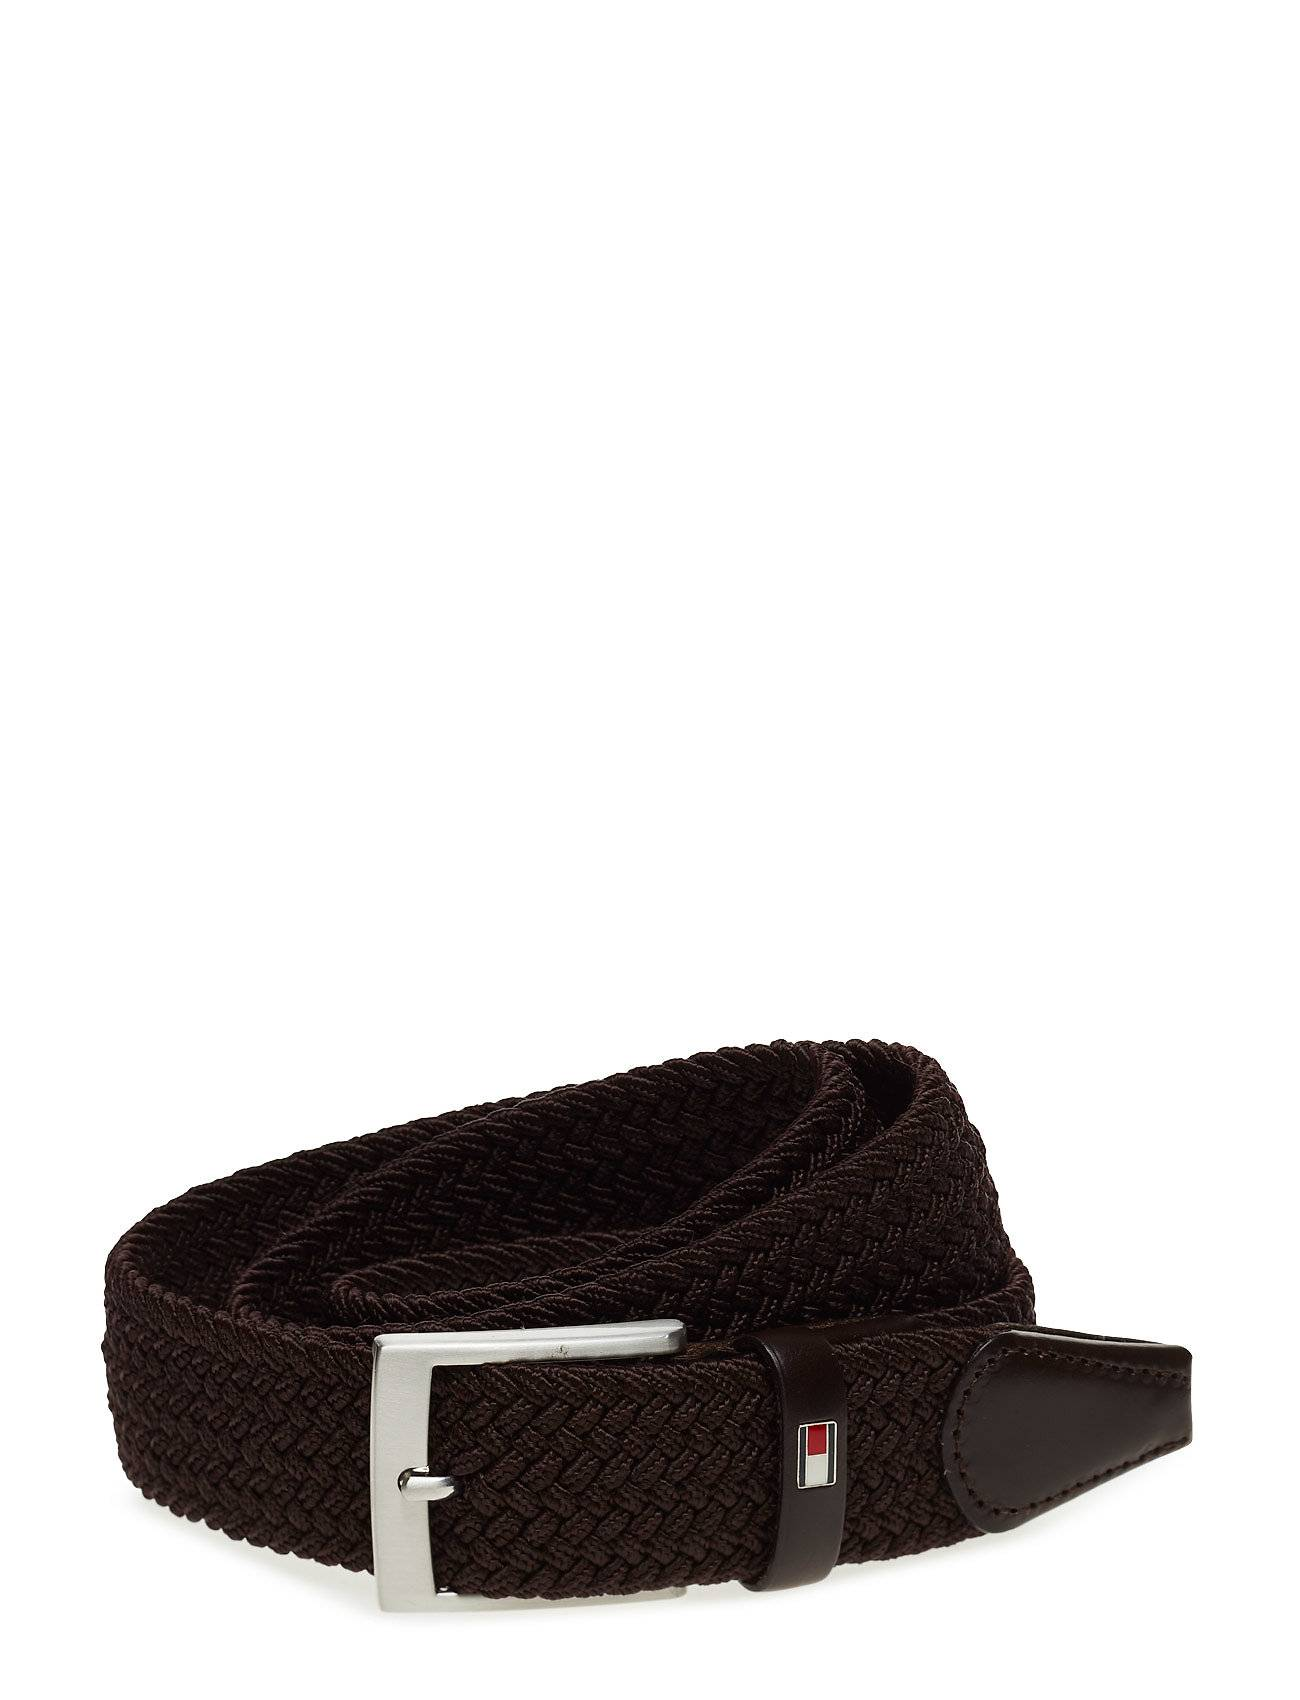 Tommy Hilfiger New Adan Belt 3.5